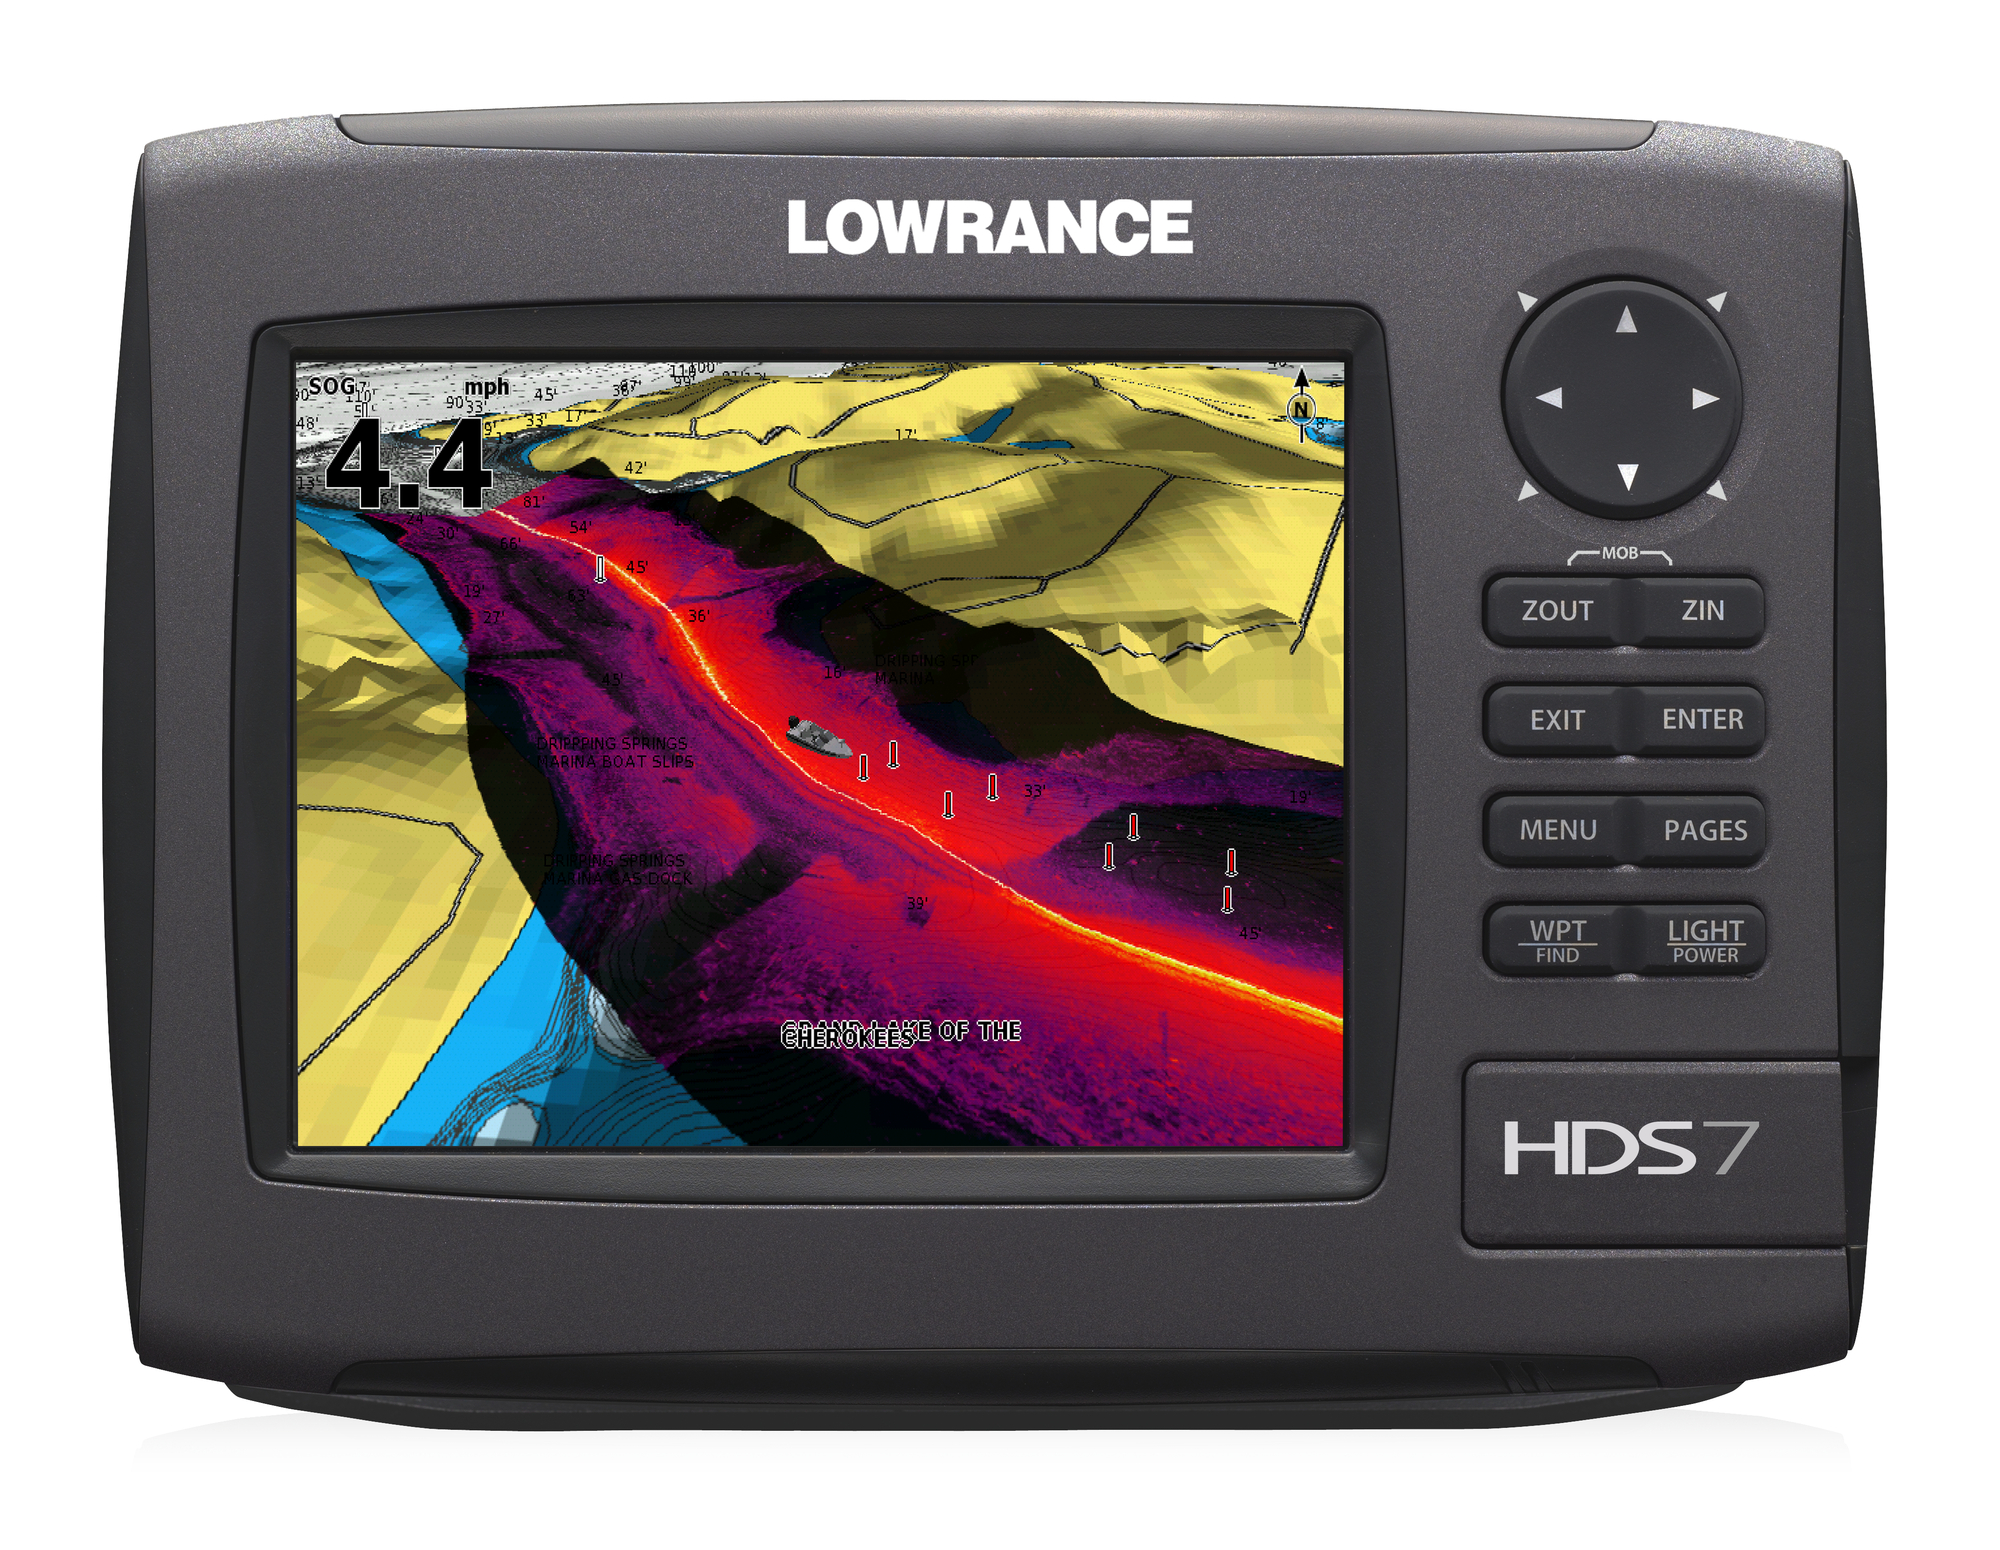 Lowrance HDS-7 Gen2 Insight USA 83/200 kHz Transducer